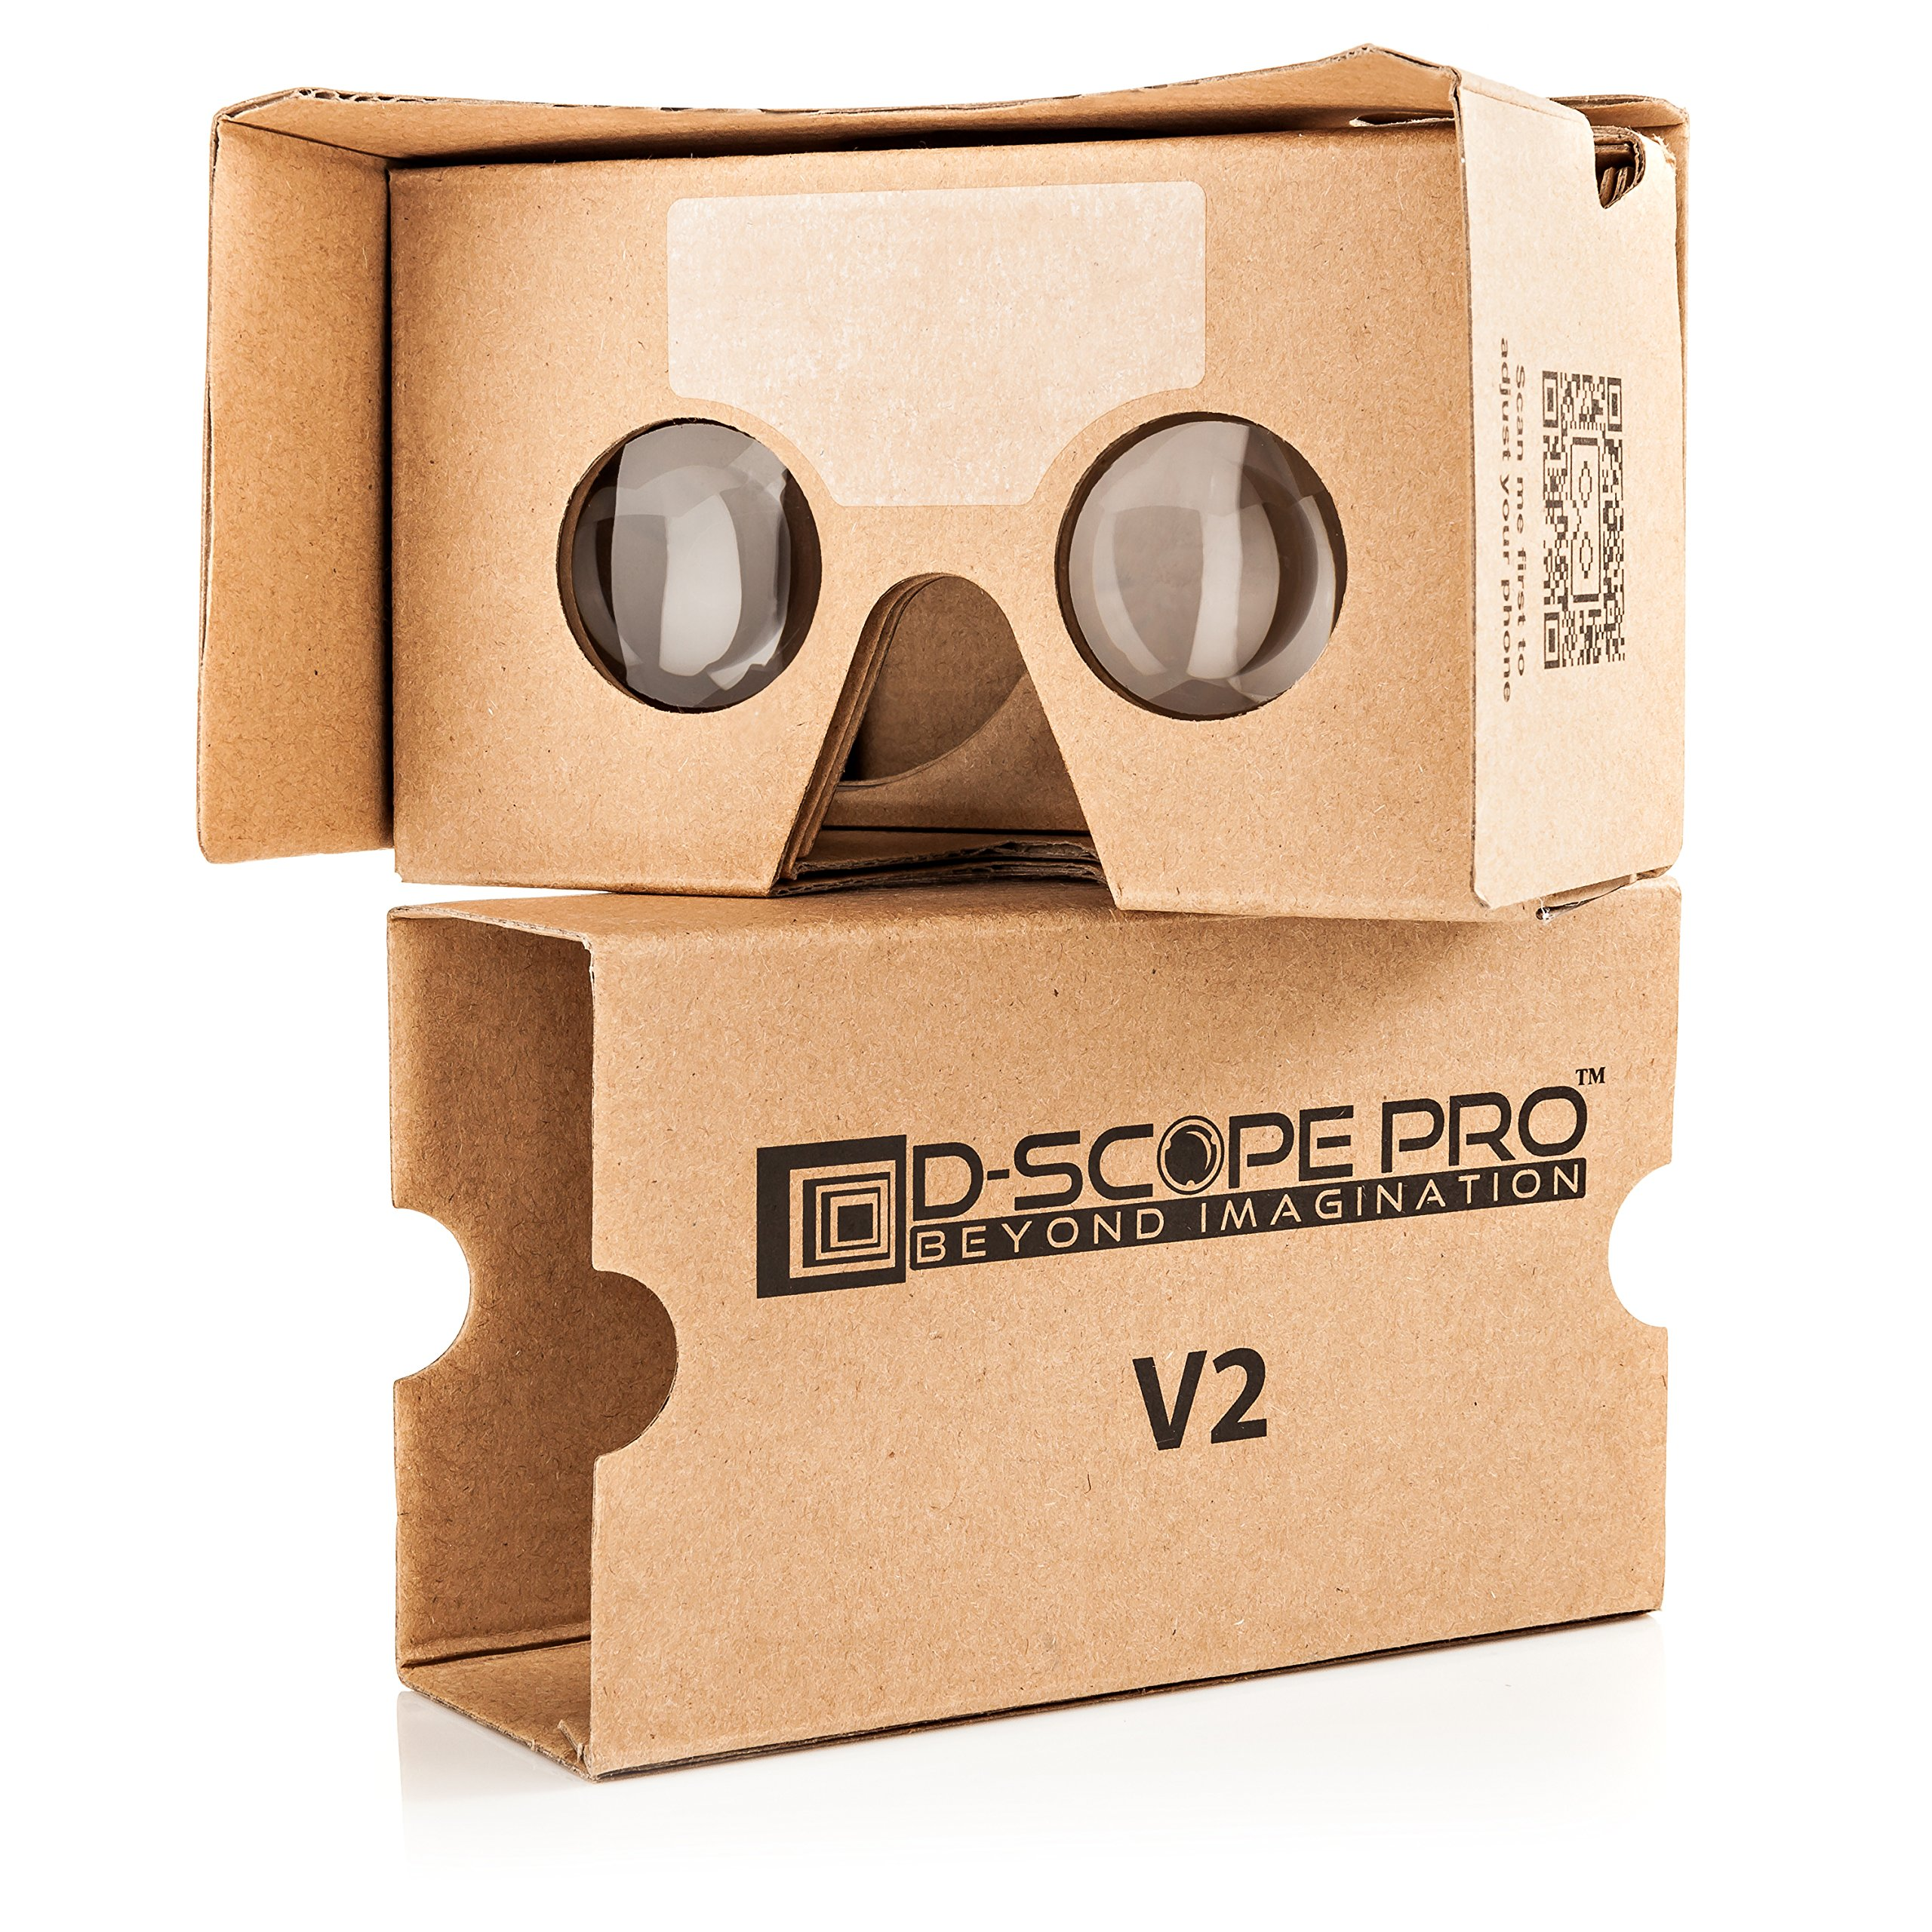 Google Cardboard V2 with Straps by D-scope Pro Virtual Reality Compatible with Android Apple Up to 6 Inch Easy Setup Machine Cut Quality Construction 37mm Lenses HD Visual Experience Includes QR Codes by D-SCOPE Pro